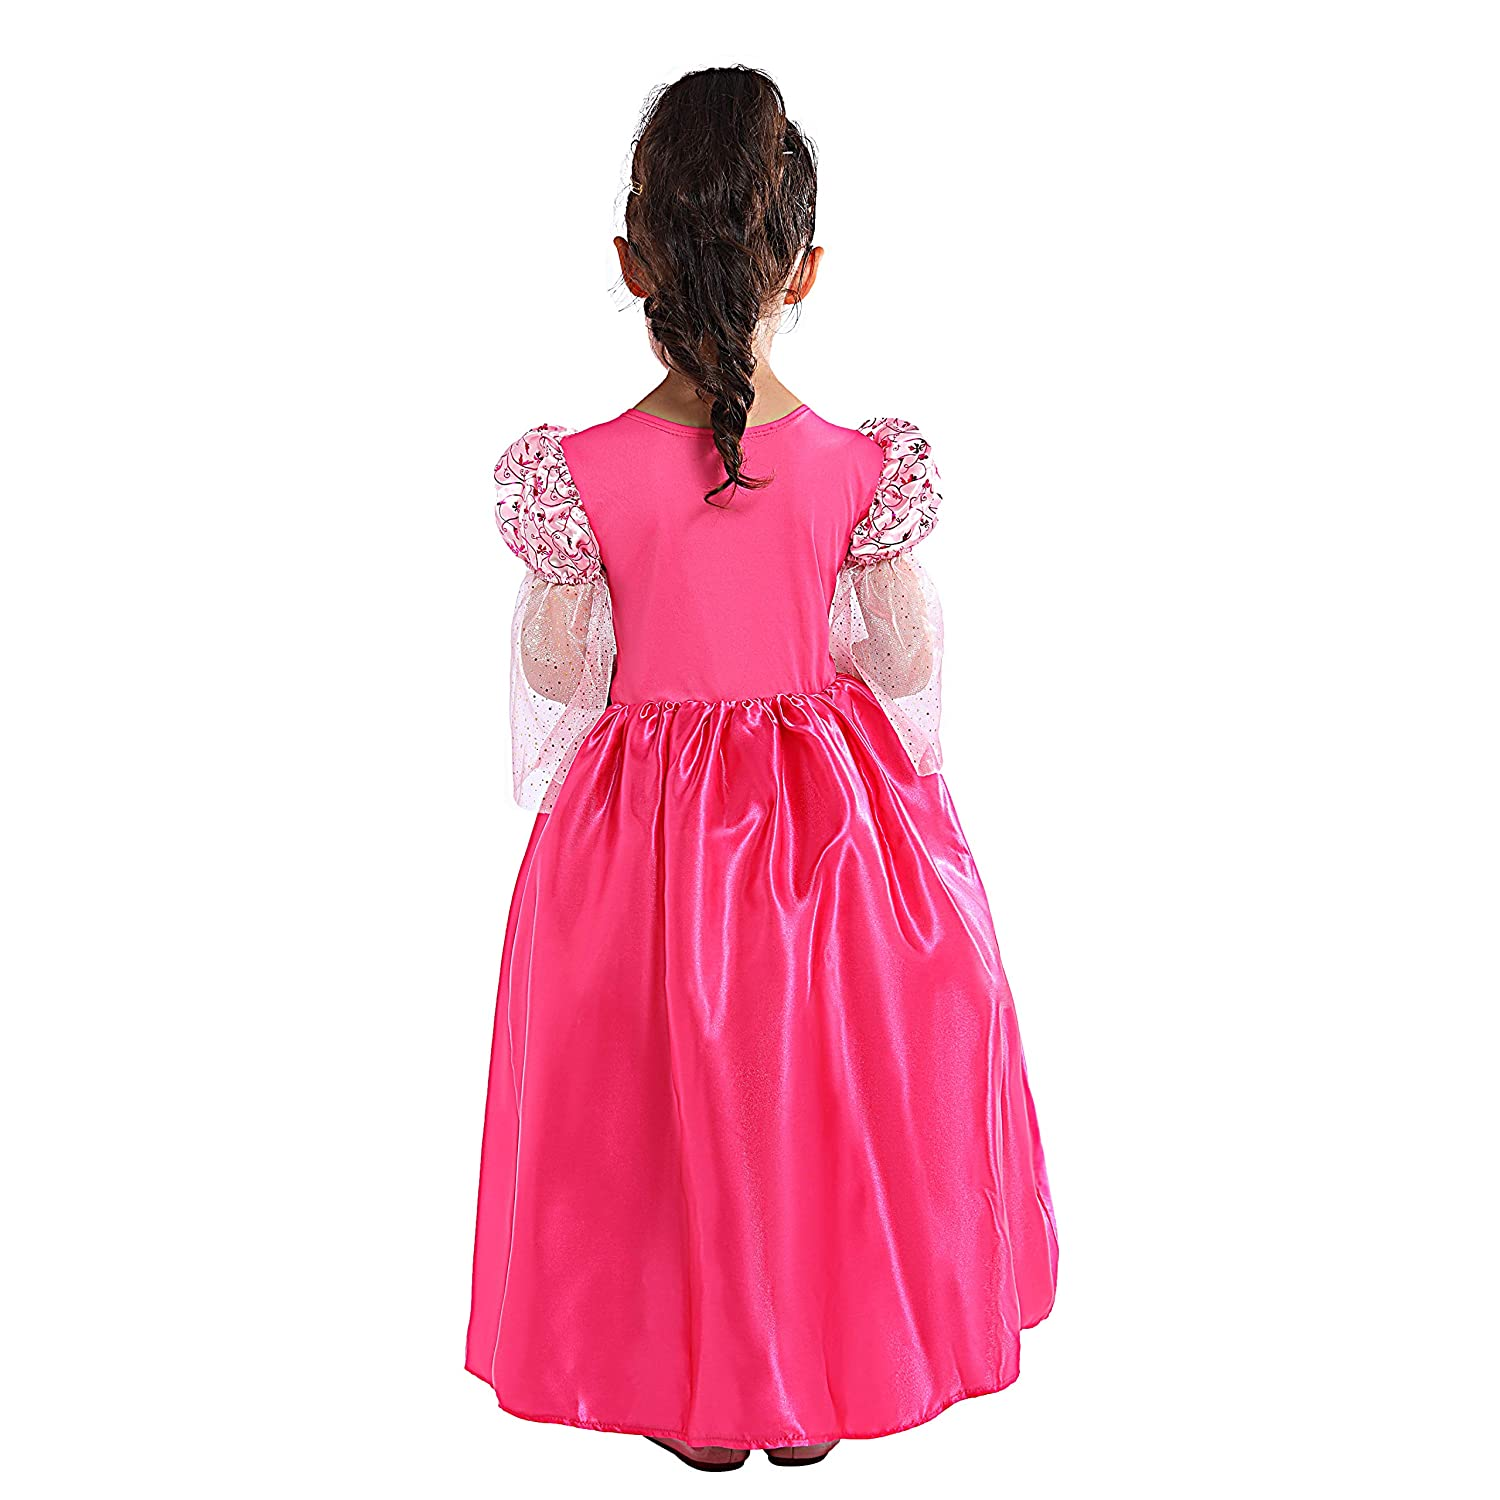 SPUNICOS Toddlers Girls Pink Medieval Princess Costume Ankle Length Dress with Tiara